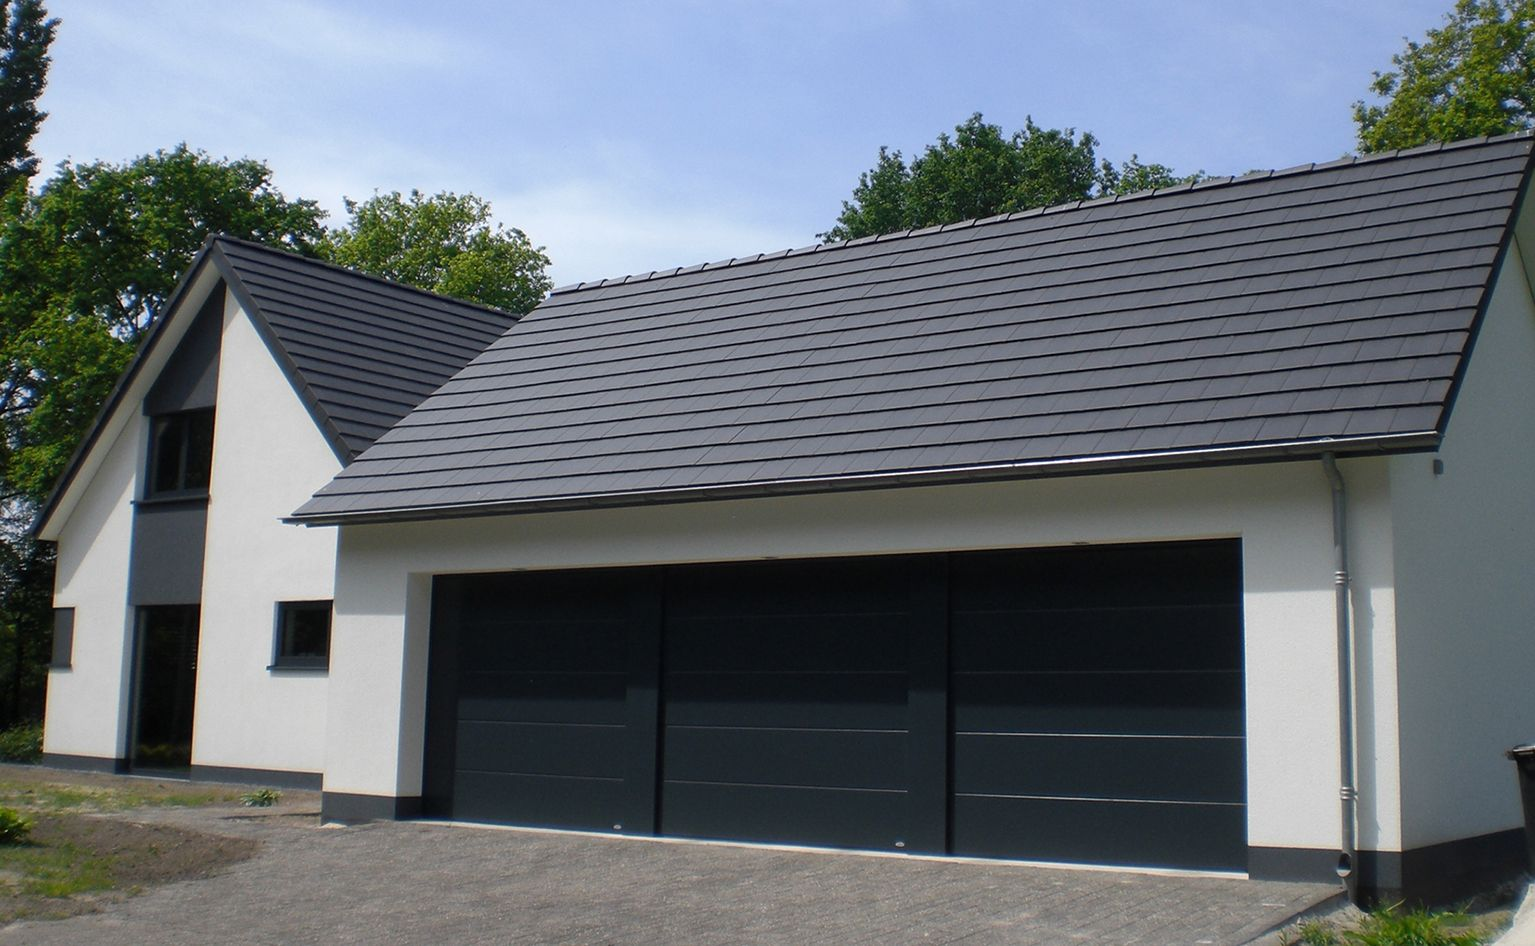 Best Planum Roof In Anthracite Grey Concrete Roof Tiles 400 x 300